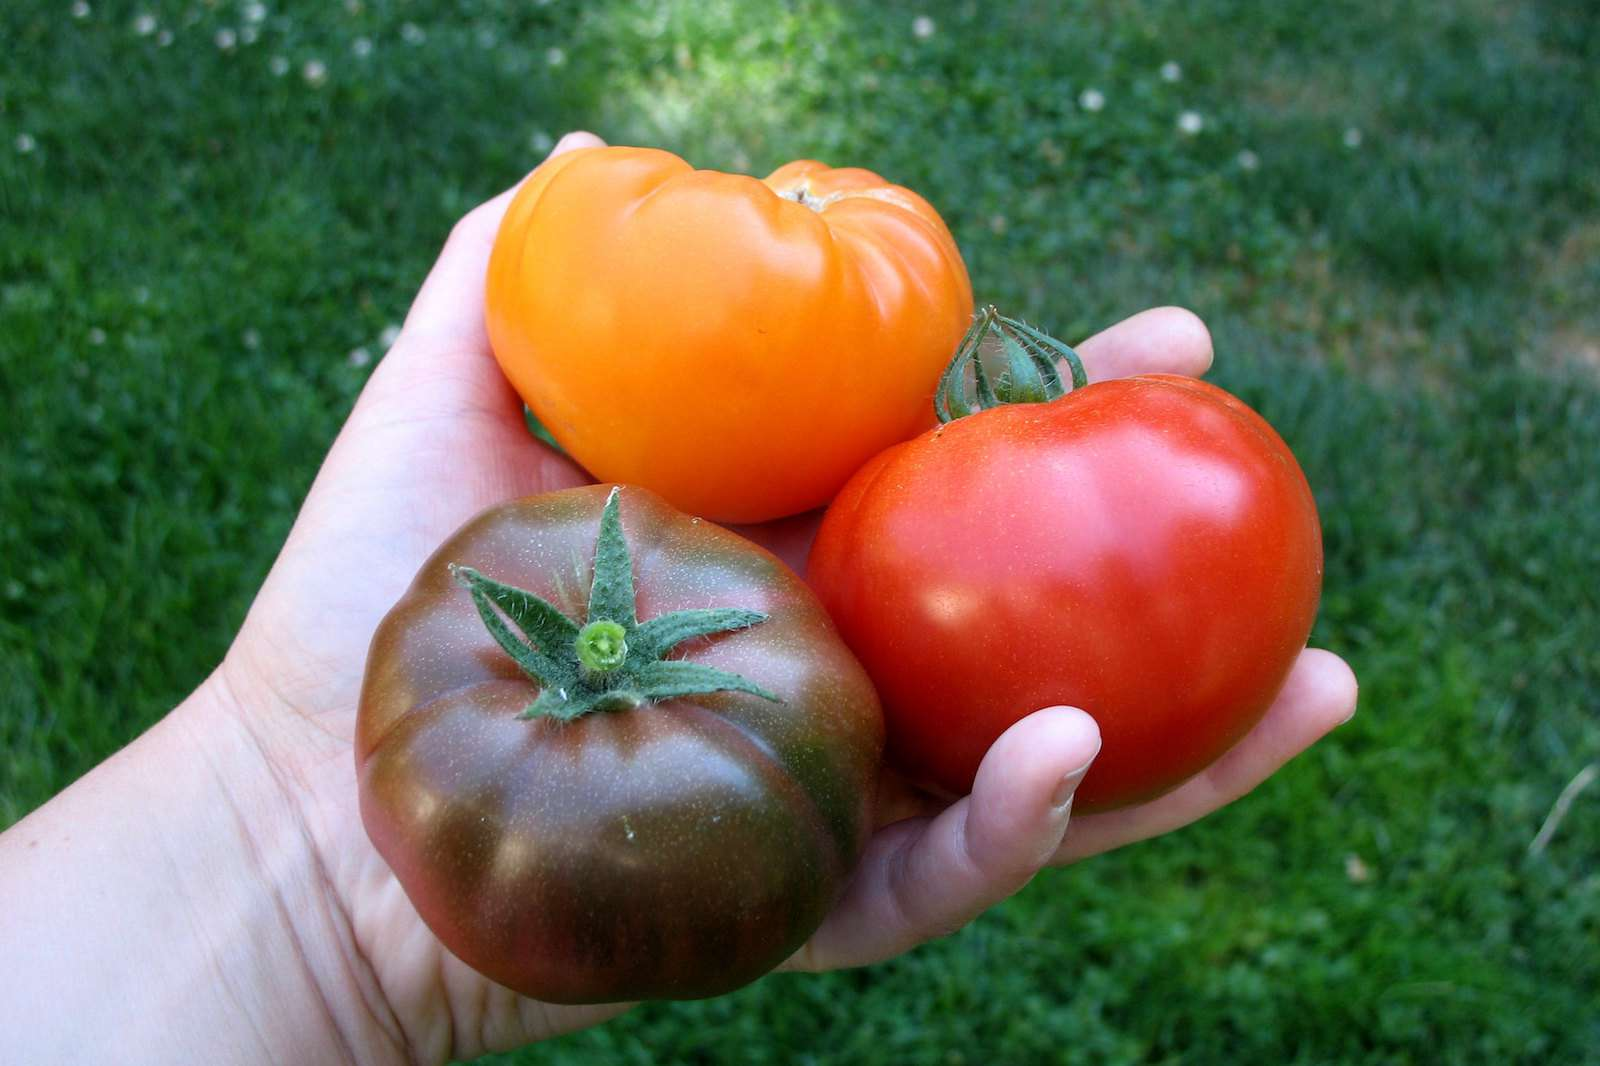 White hand holding 3 tomatoes, red, orange and purple